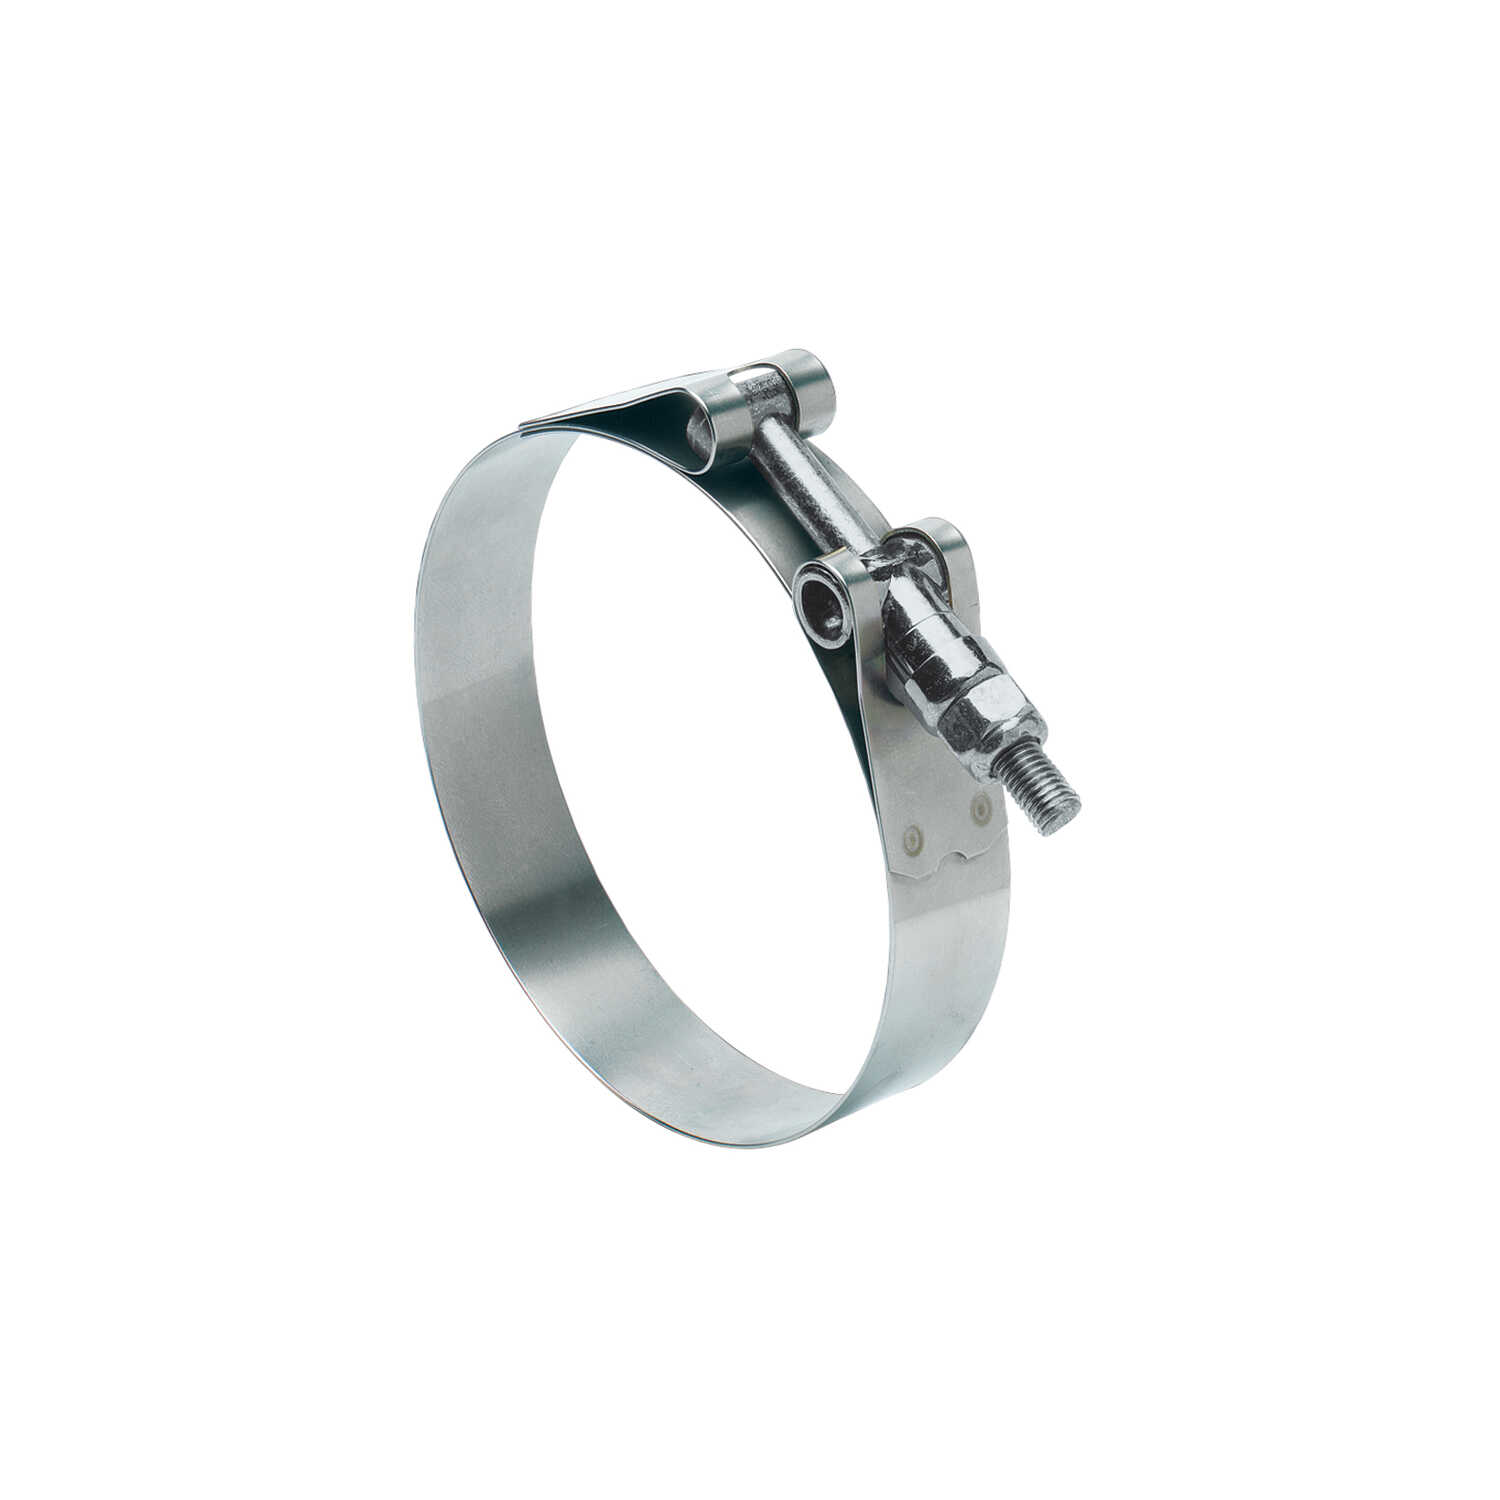 Ideal  Tridon  2-1/2 in. 2-13/16 in. 250  Silver  Hose Clamp  Stainless Steel Band  T-Bolt